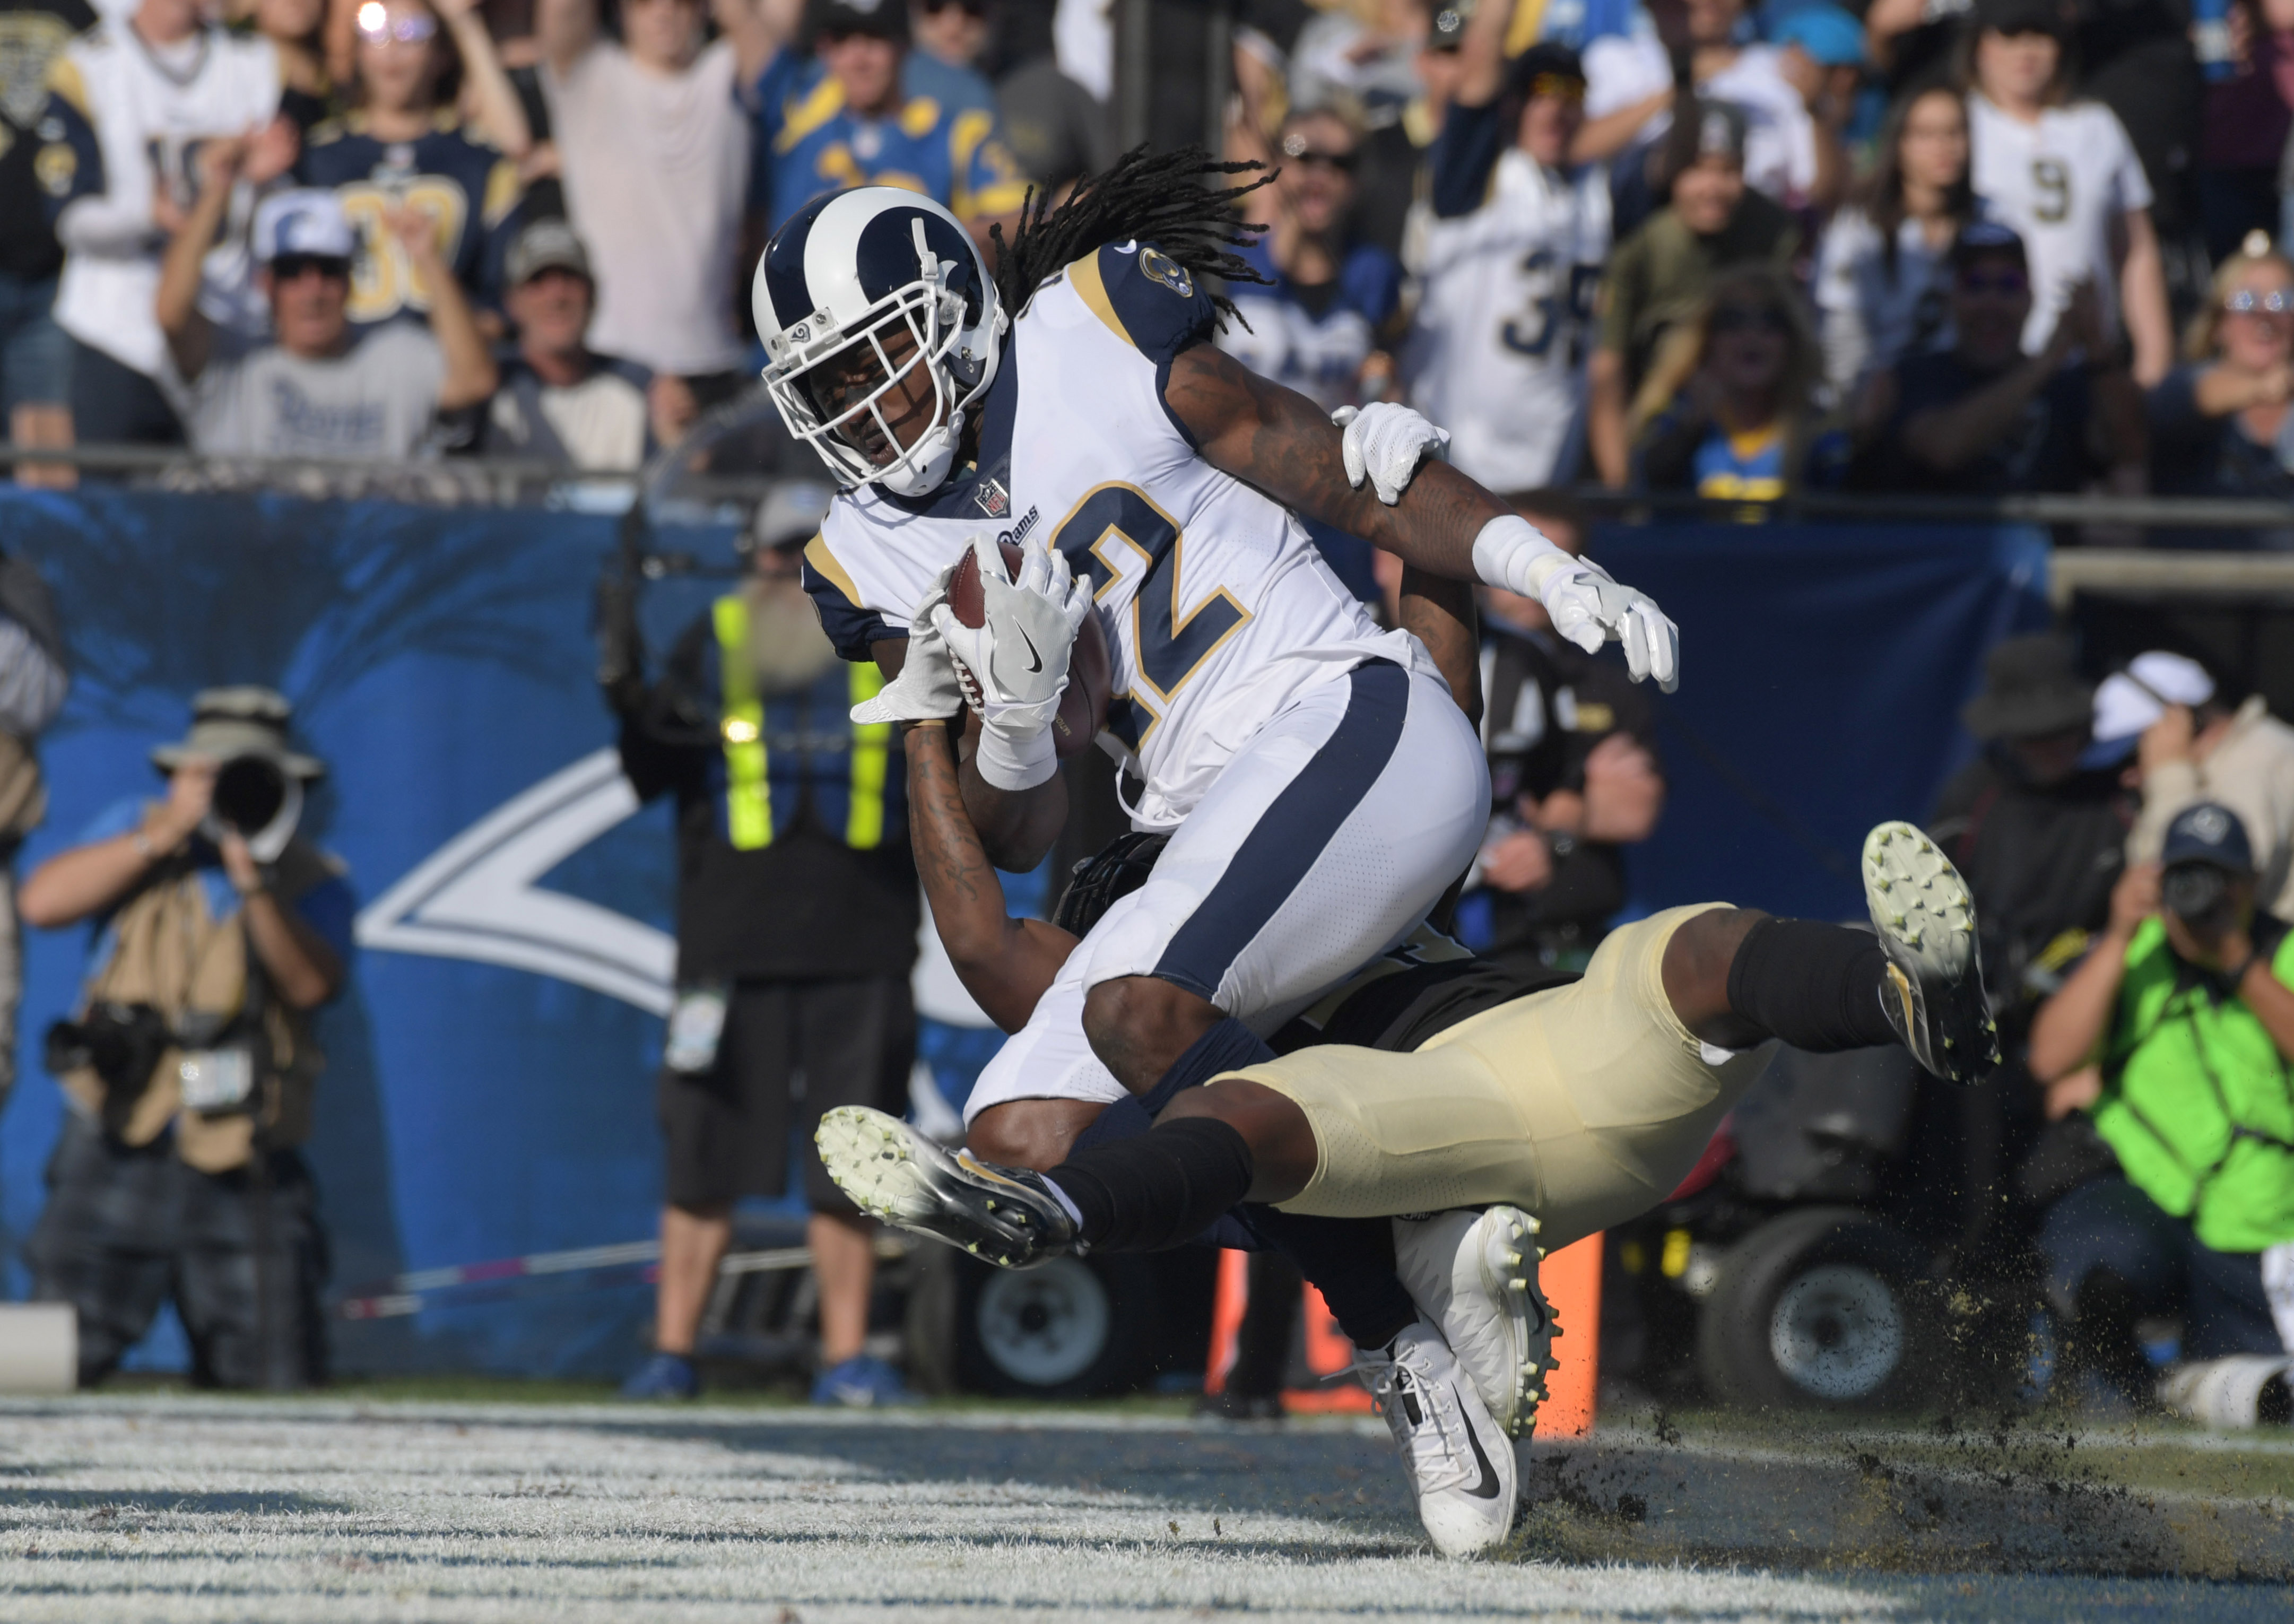 Los Angeles Rams WR Sammy Watkins scores a touchdown against the New Orleans Saints in Week 12